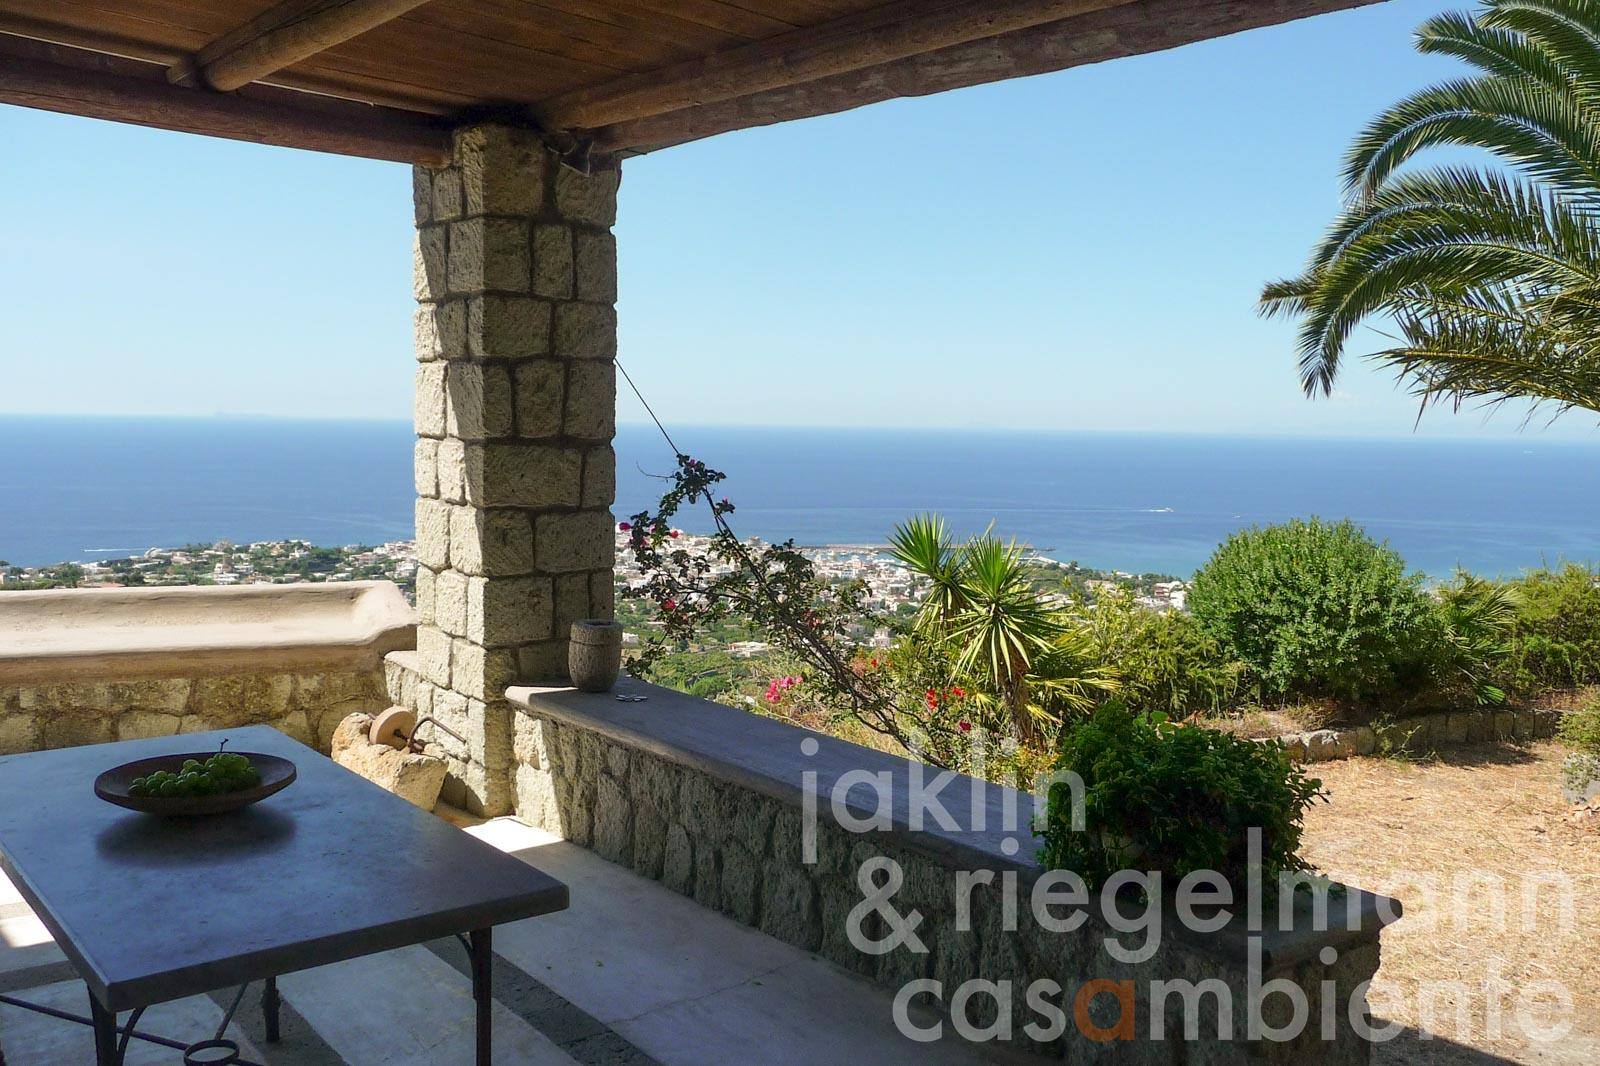 Property in panoramic position of the island Ischia with view to the Tyrrhenian Sea